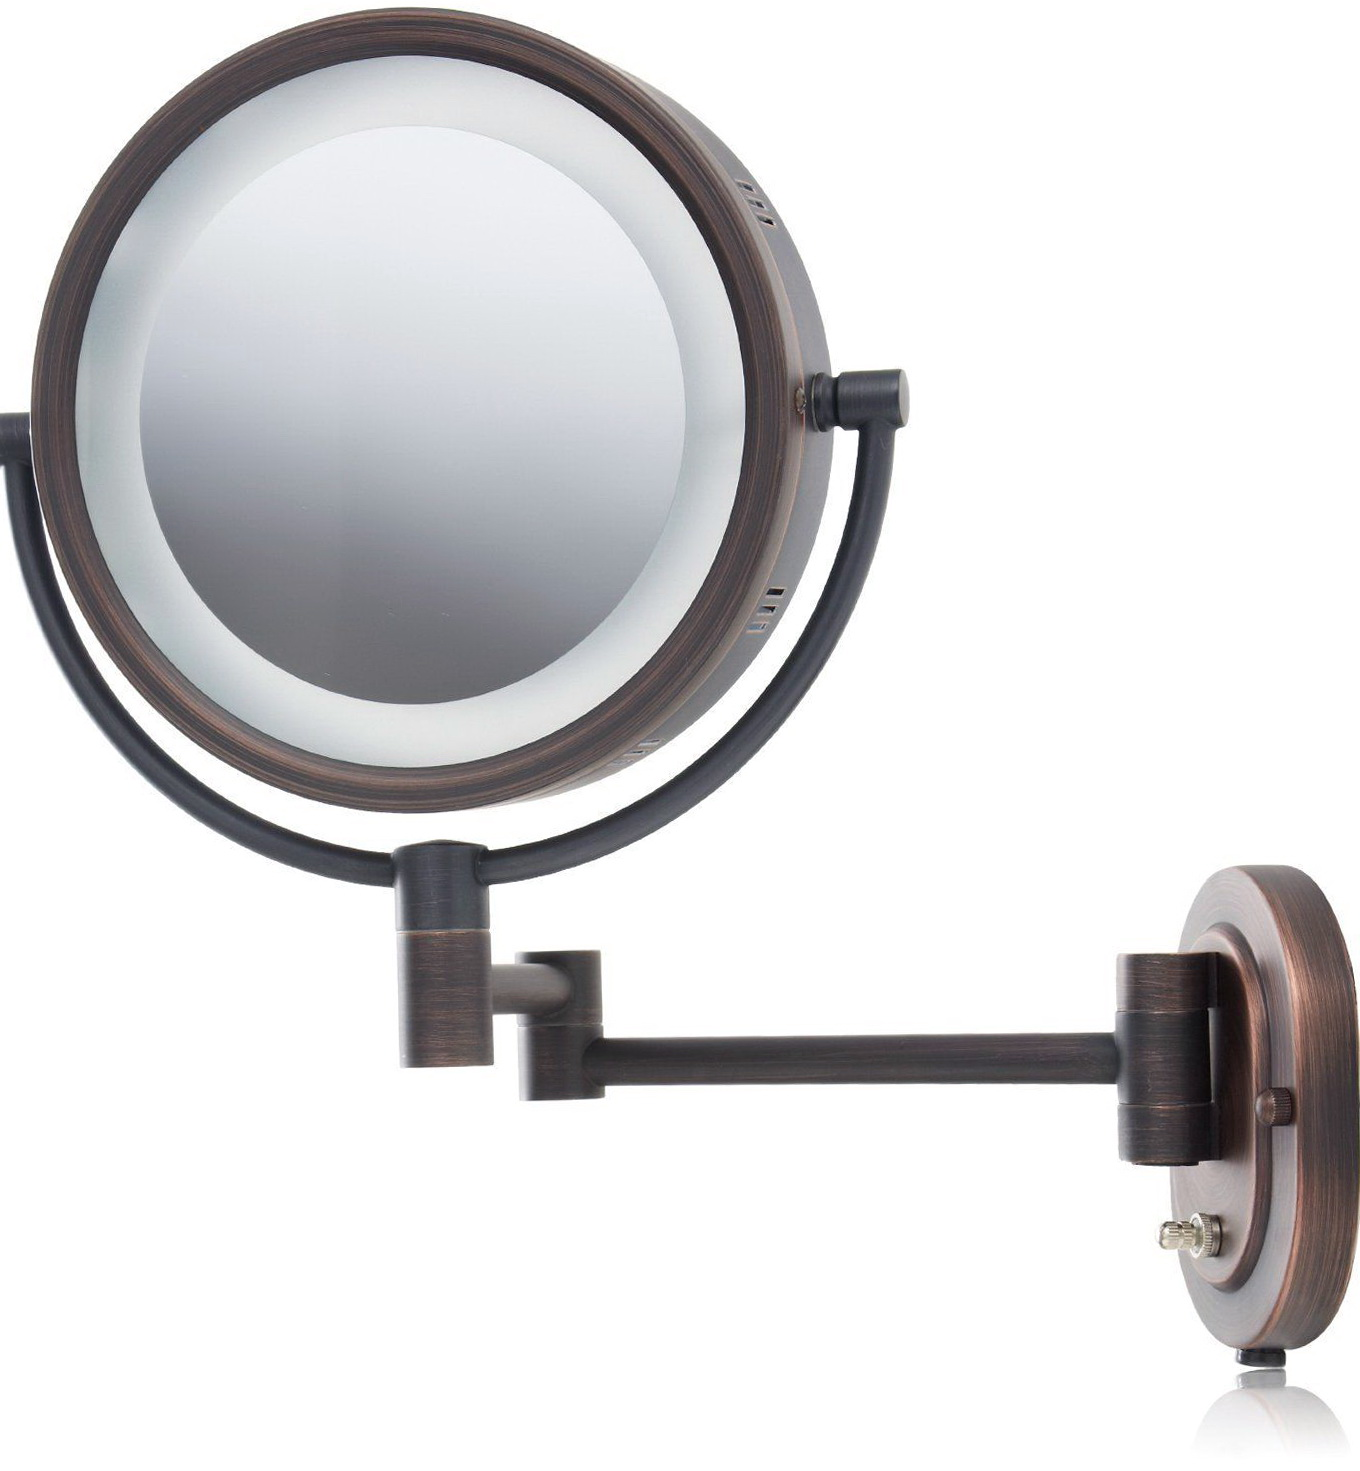 Wall Mounted Lighted Makeup Mirror 10x Home Design Ideas